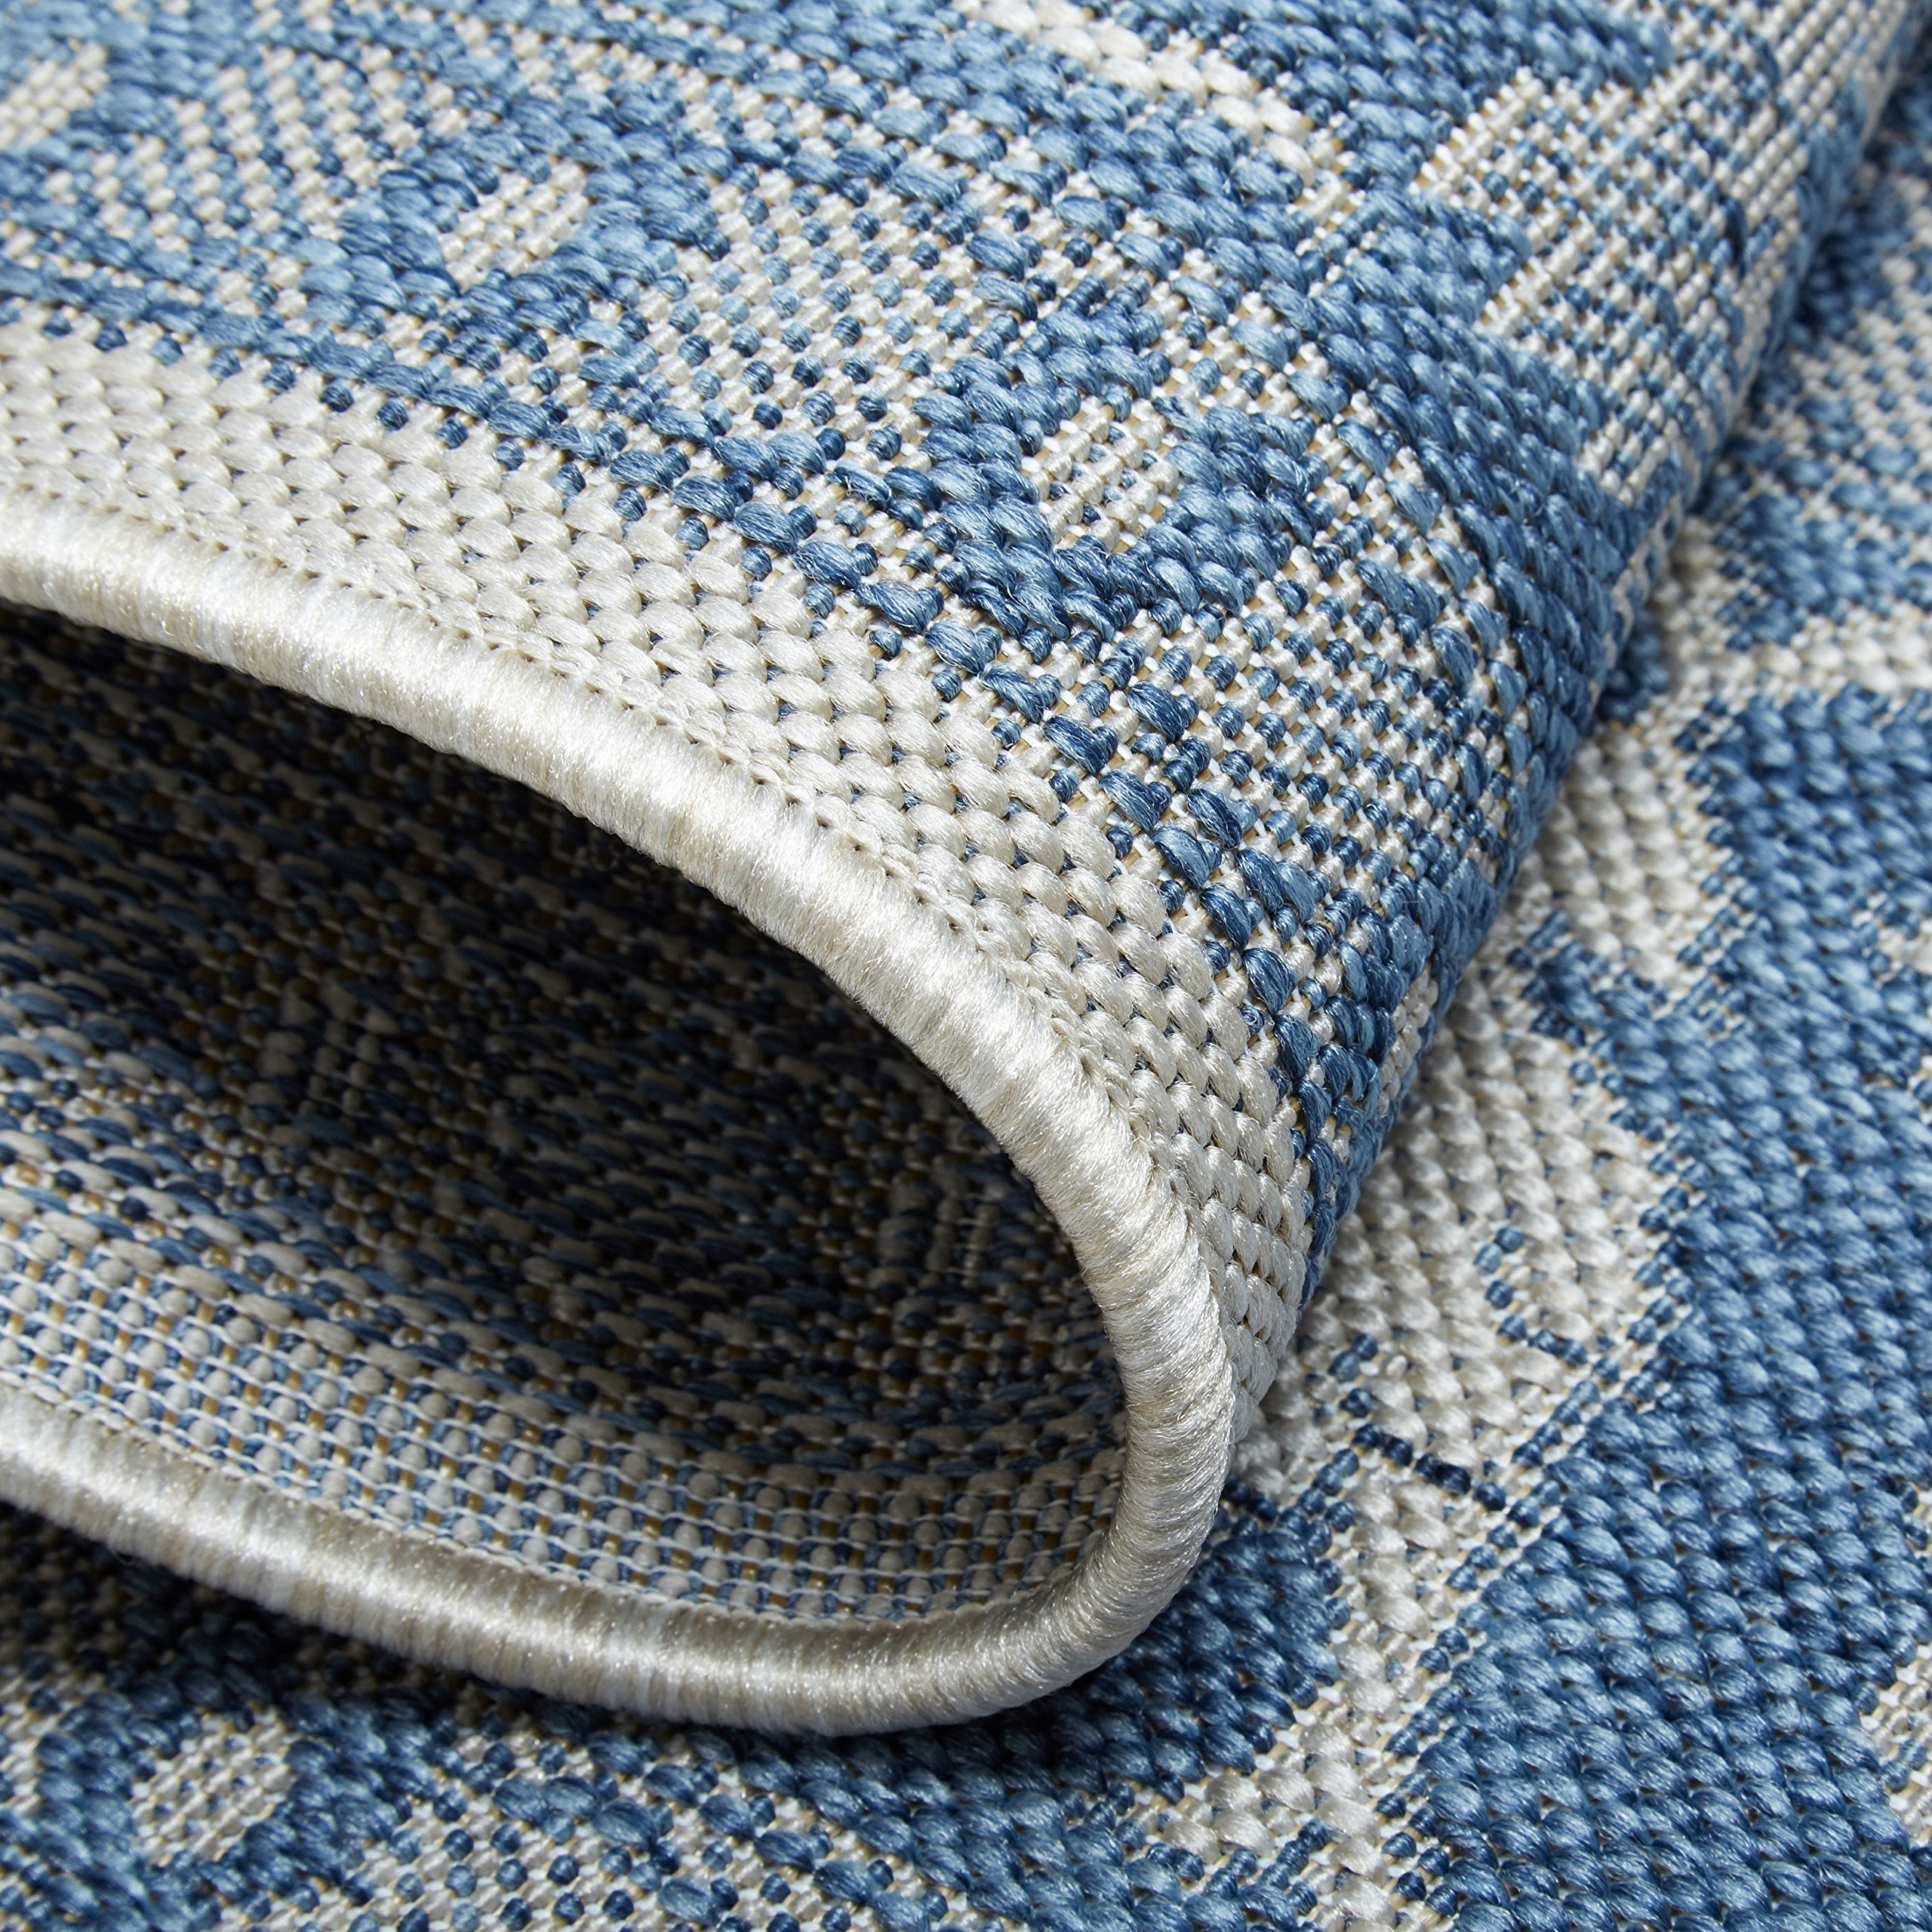 Home Dynamix Nicole Miller Patio Country Ayana Indoor/Outdoor Area Rug 7'9''x10'2'', Traditional Gray/Blue by Home Dynamix (Image #5)